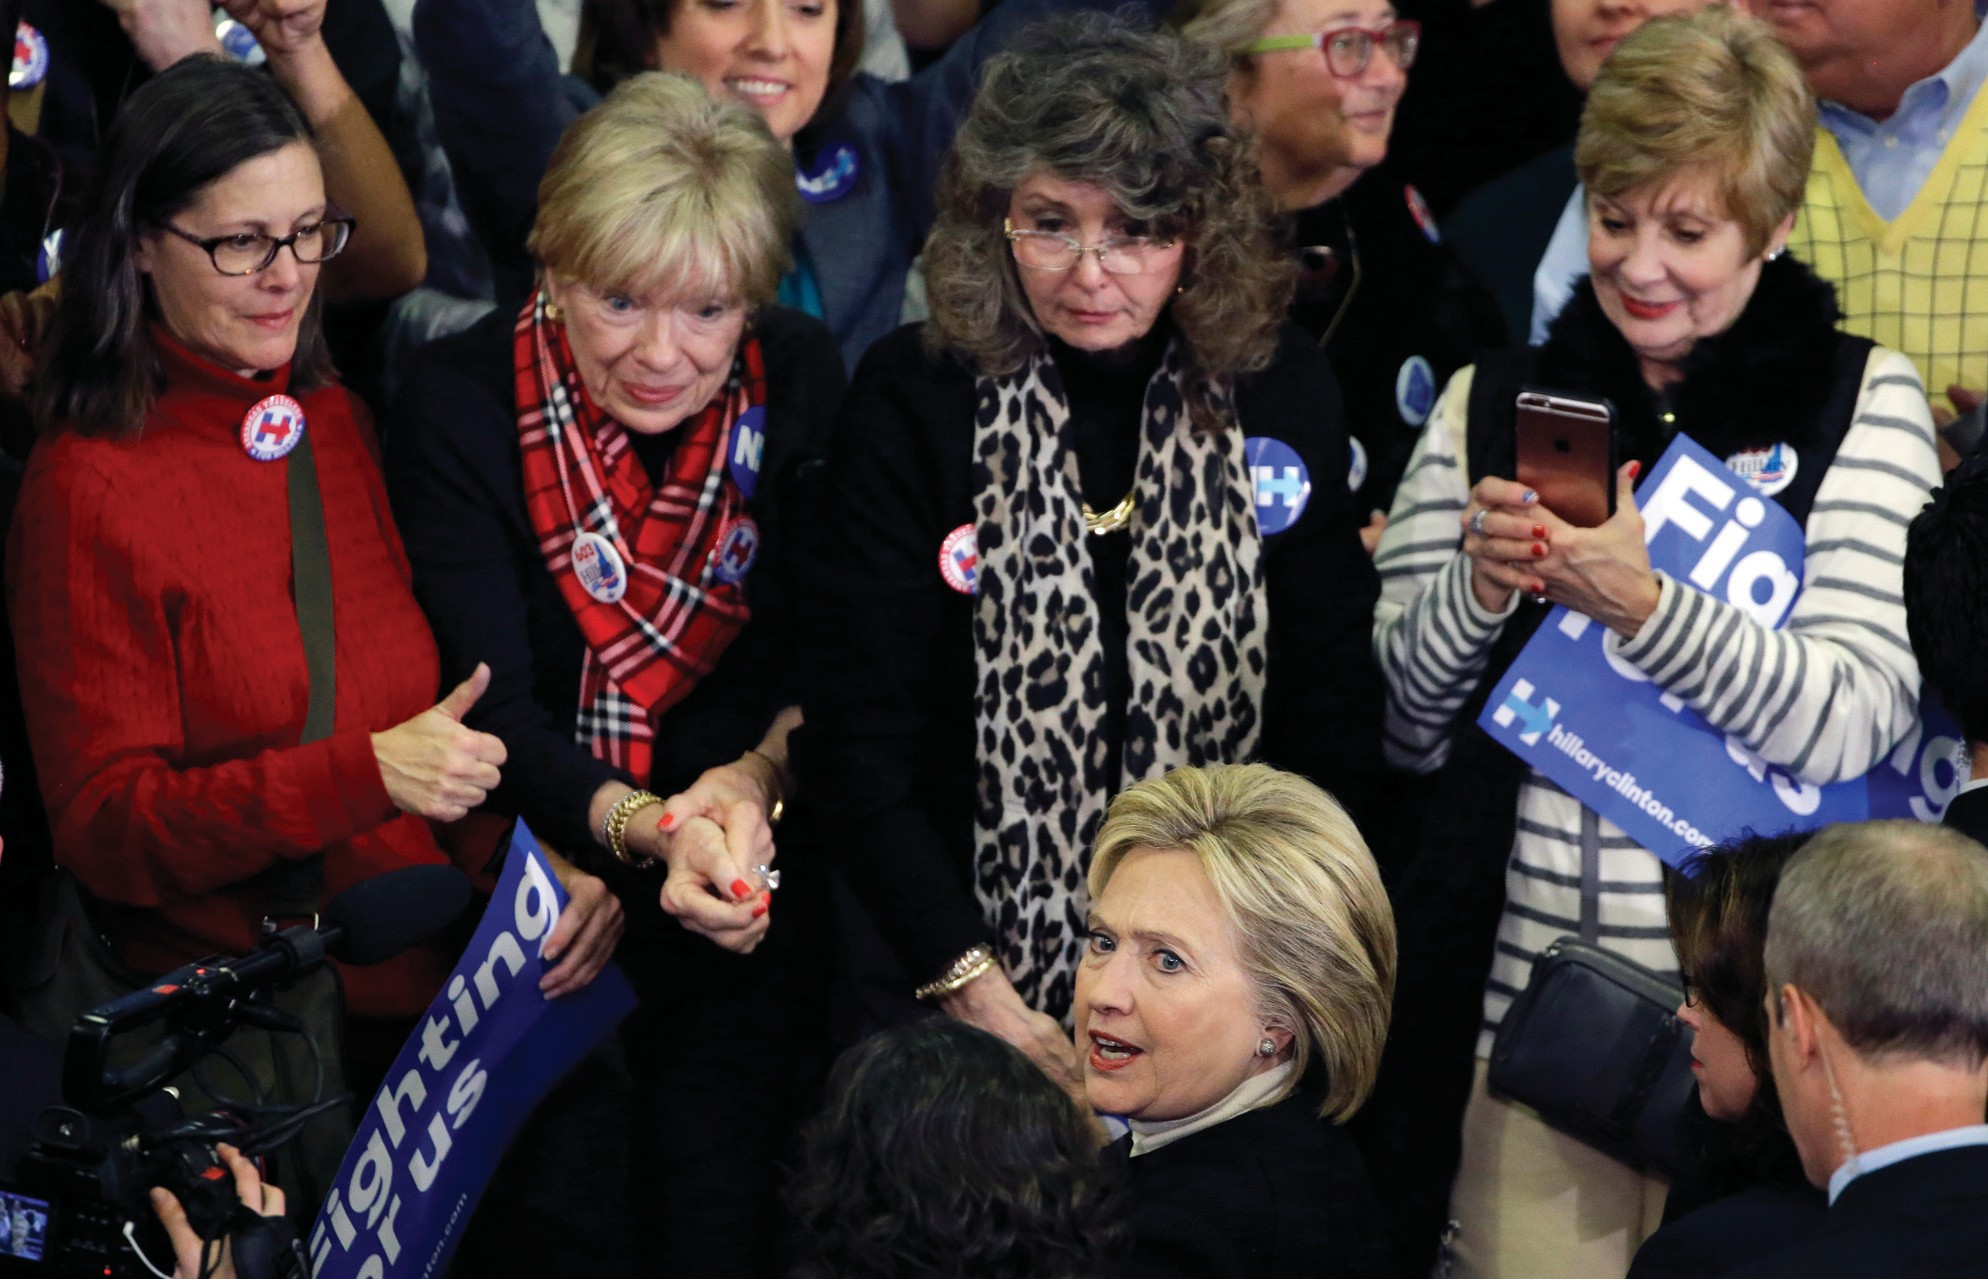 On Tuesday, Democratic presidential candidate Hillary Clinton mingles with supporters at her New Hampshire presidential primary campaign rally in Hooksett, N.H.